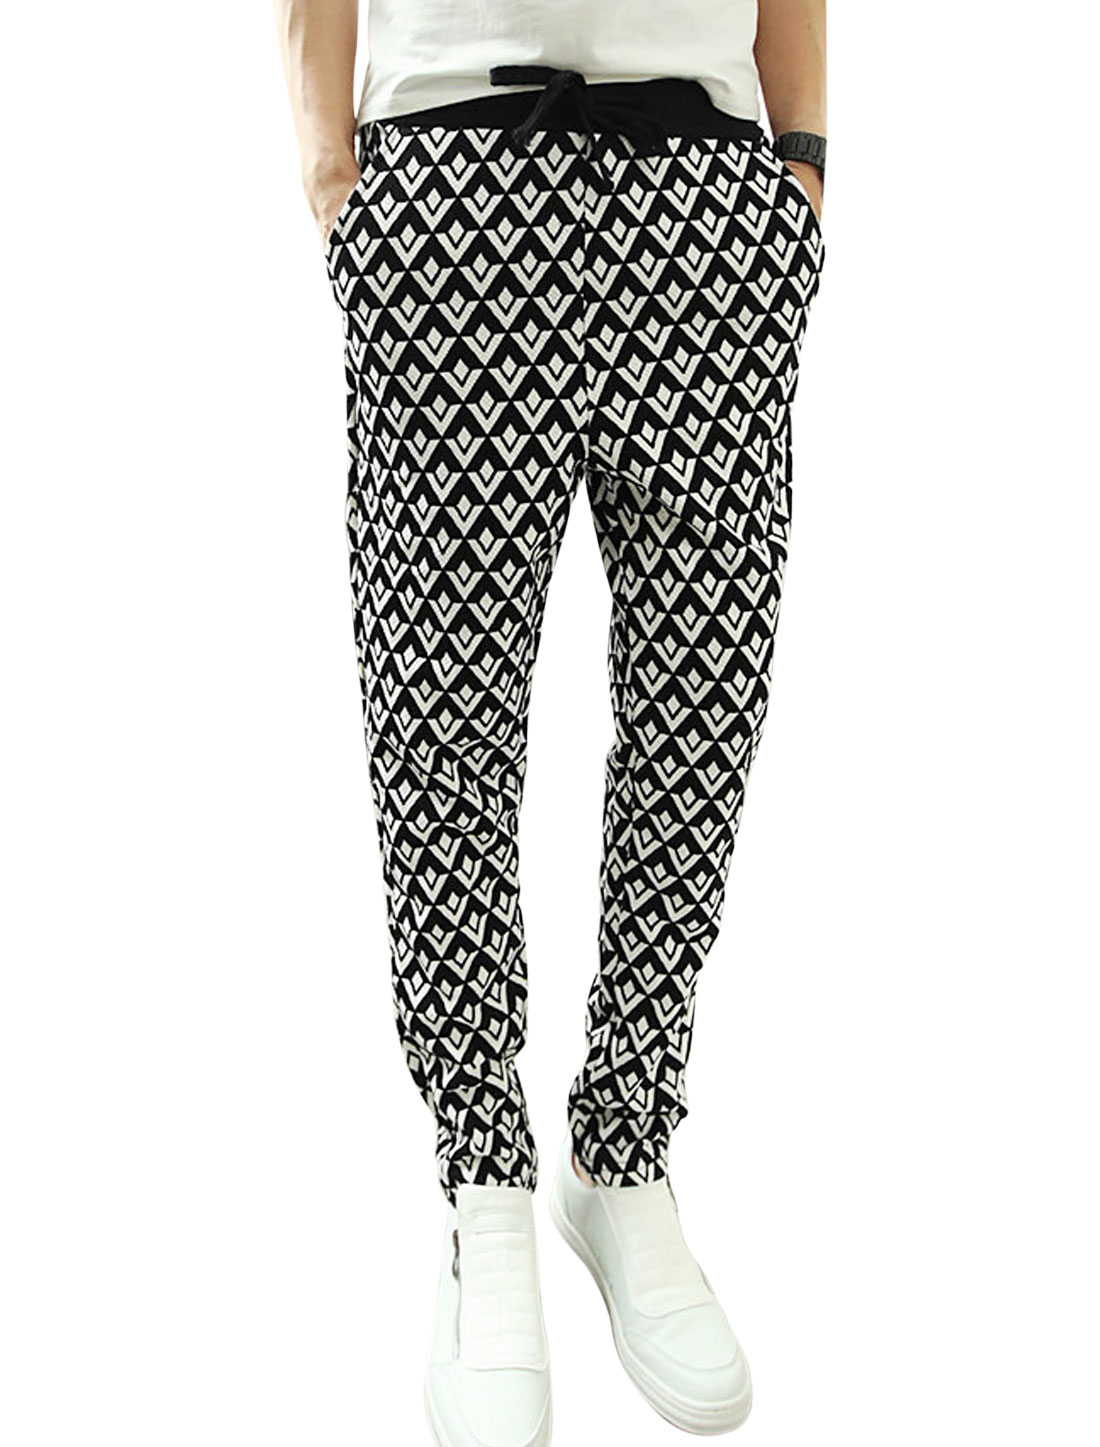 Men Contrast Color All Over Geometric Print Casual Textured Pants Black White W30